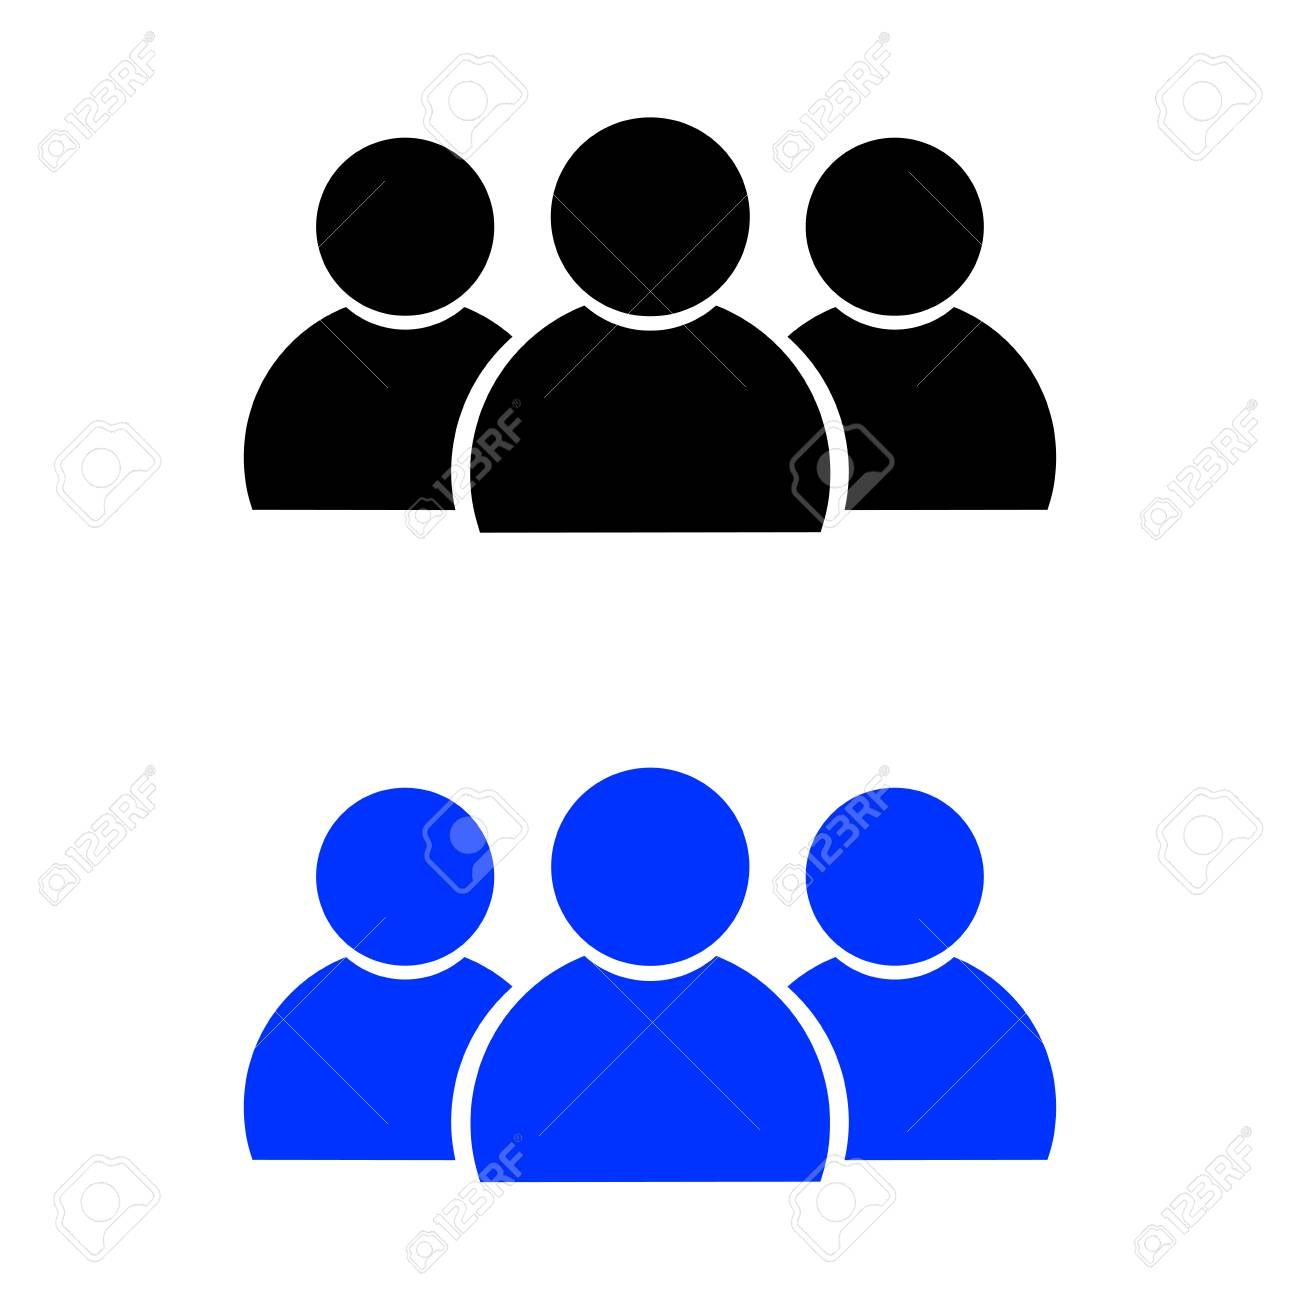 people icon vector illustration black and blue color royalty free rh 123rf com  people icon vector free